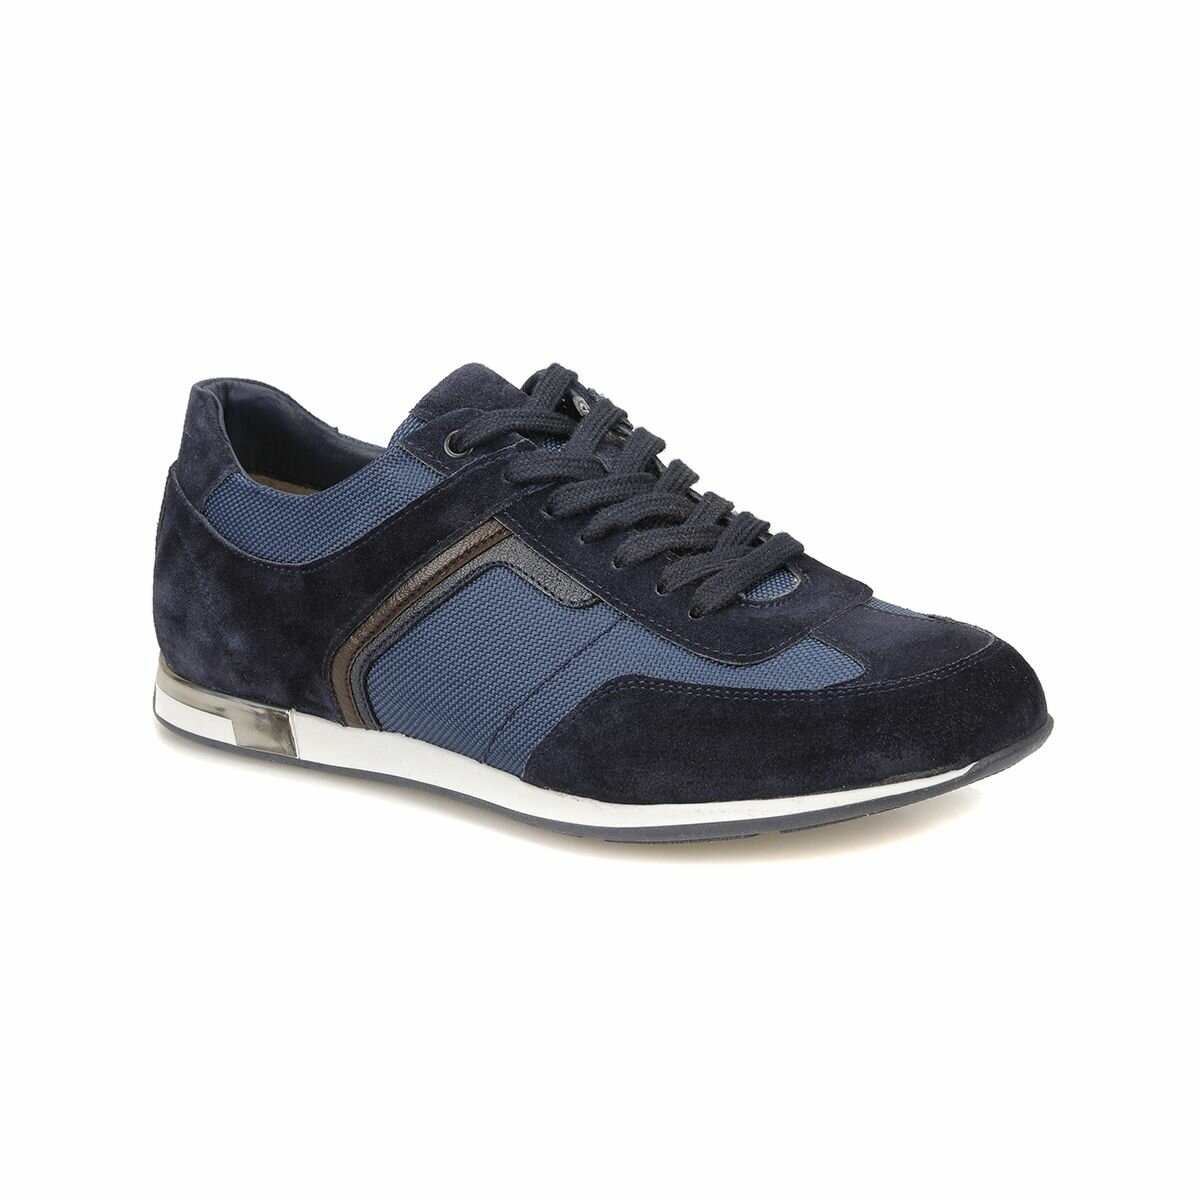 FLO 1014 Navy Blue Men 'S Shoes Oxide